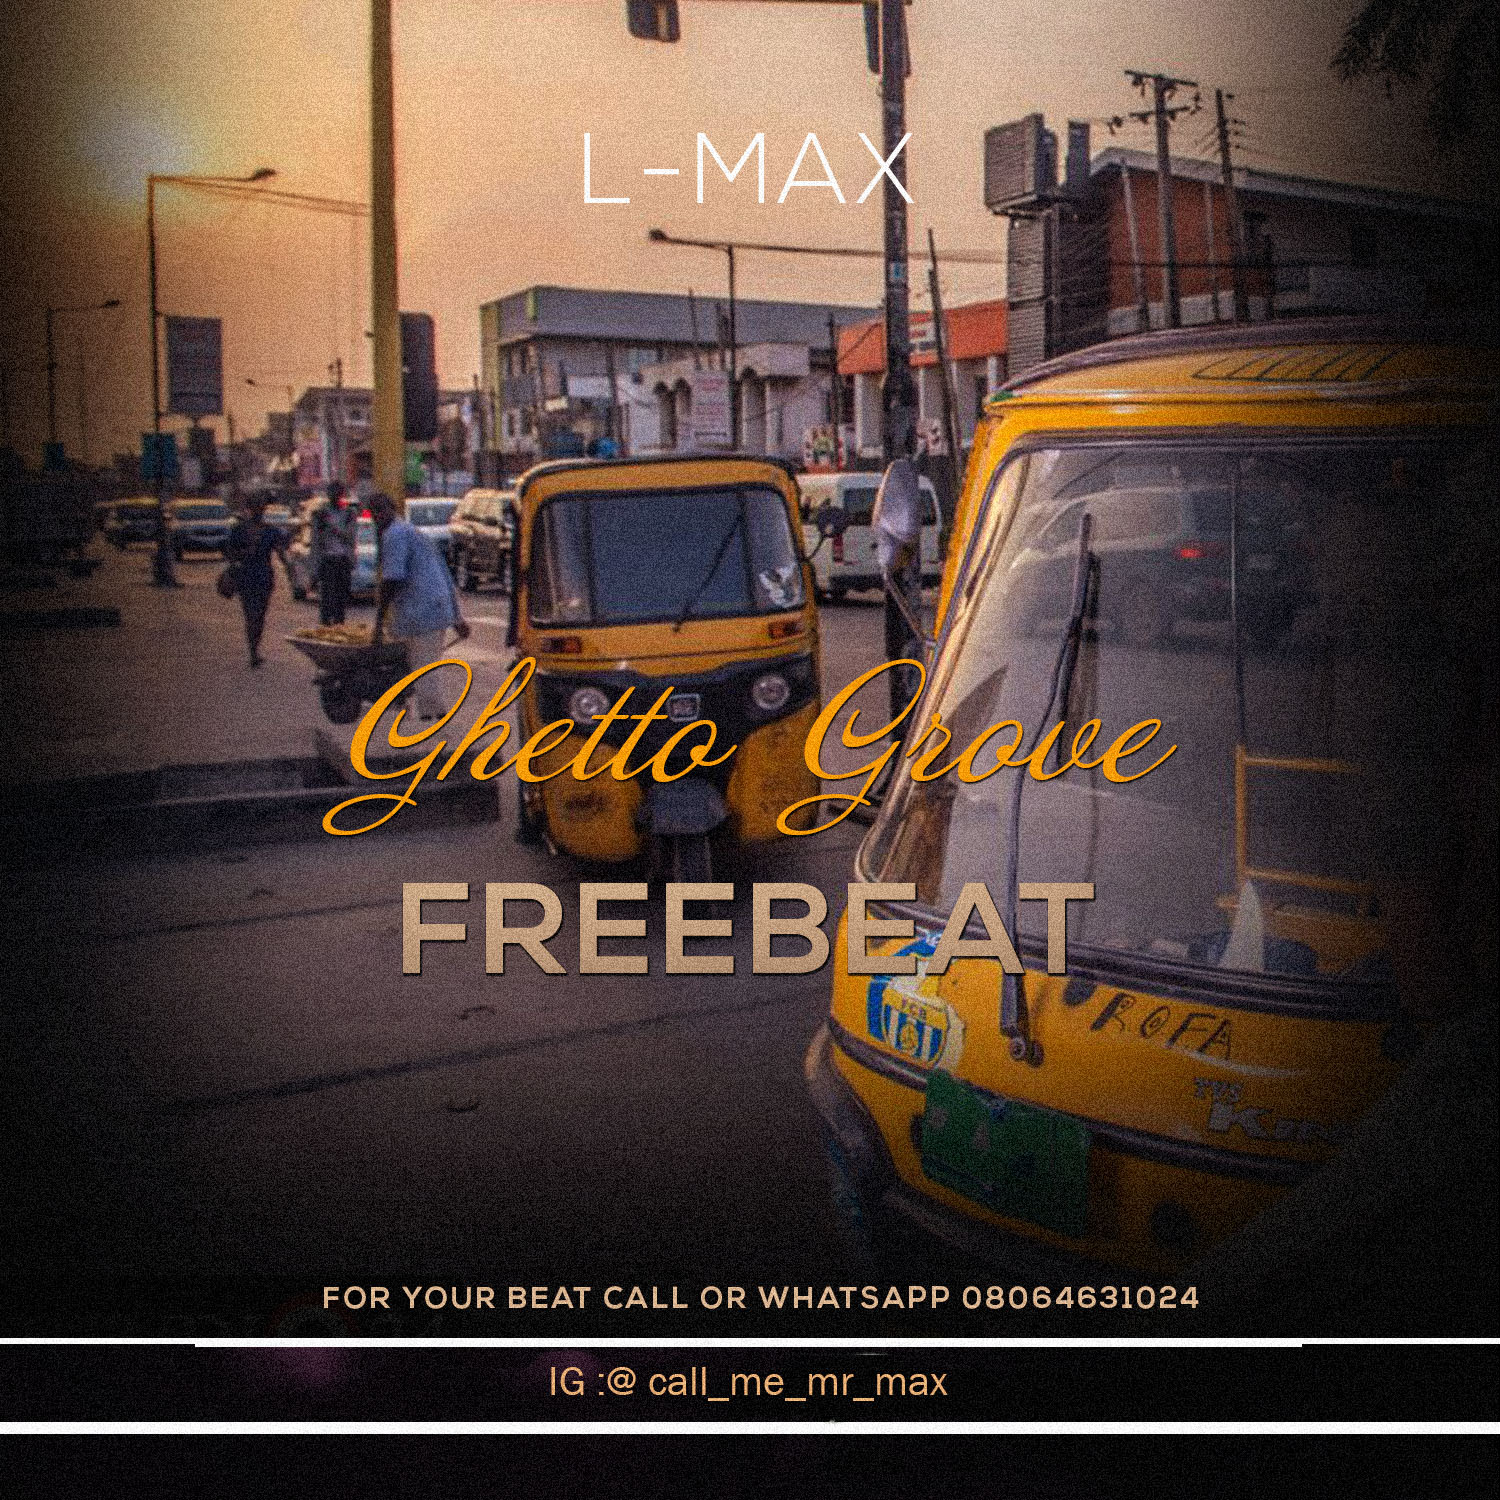 [Free Beat] Ghetto Love – Produced by Lmax